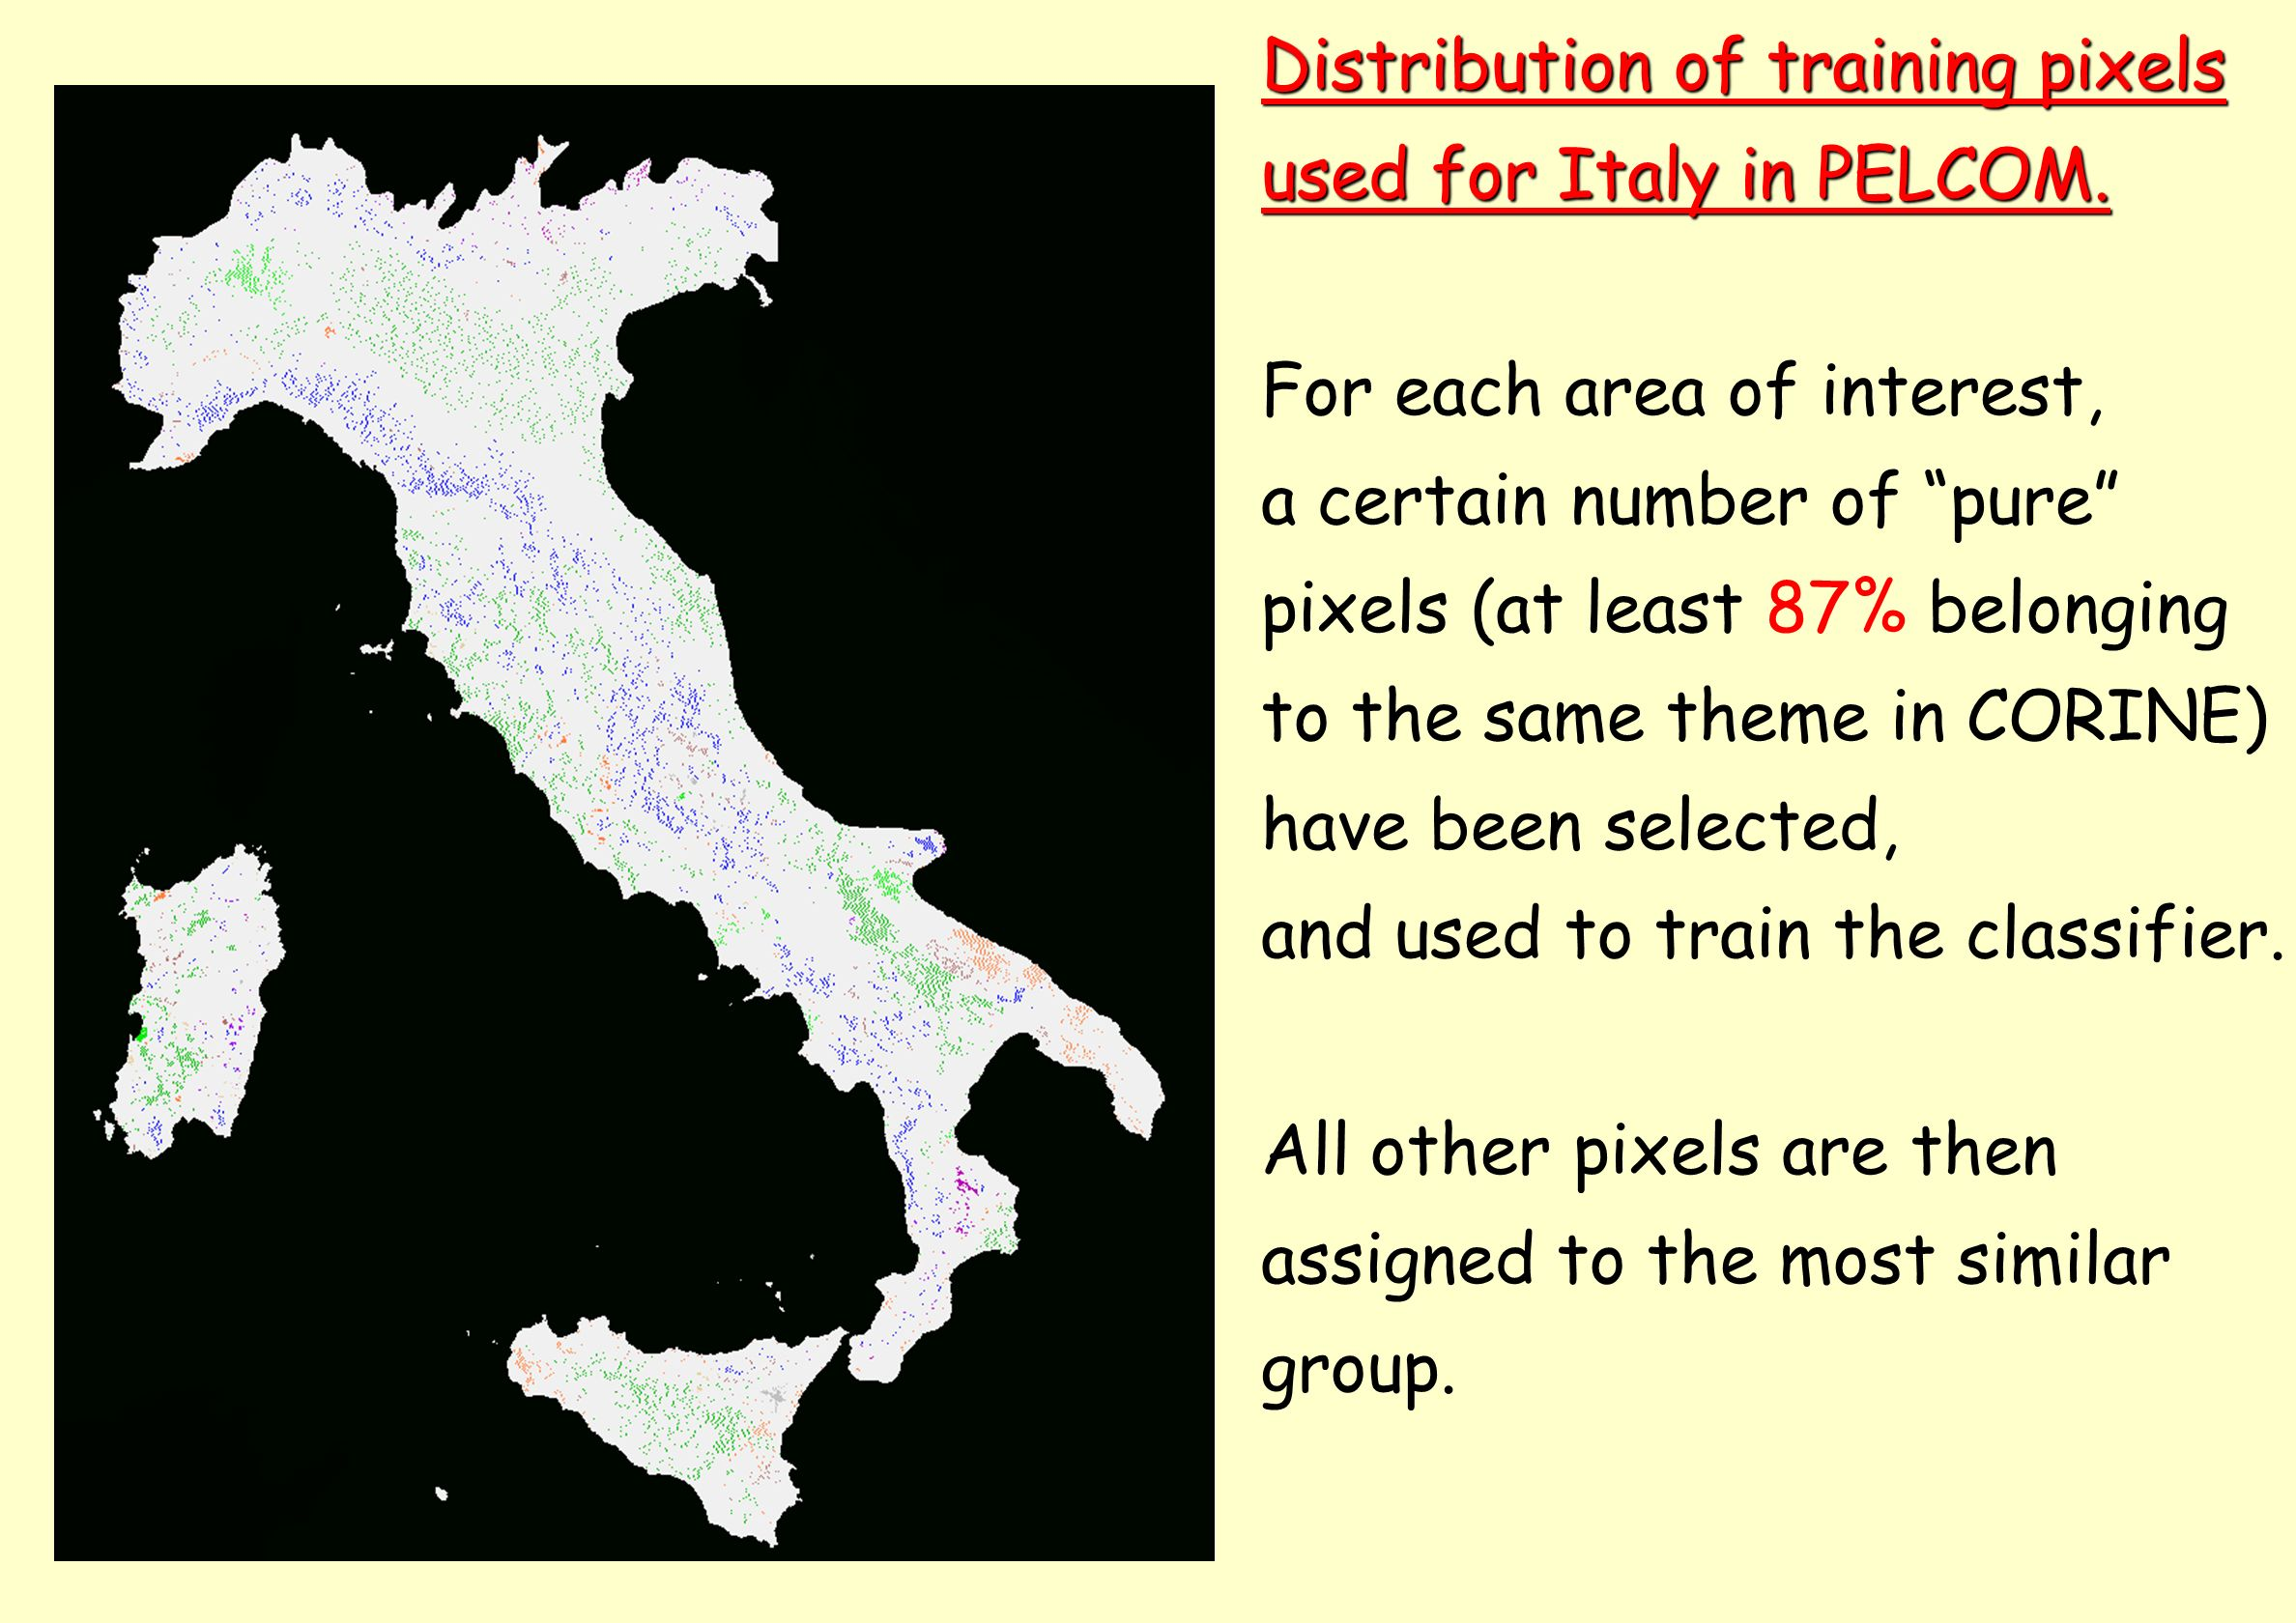 Distribution of training pixels used for Italy in PELCOM.